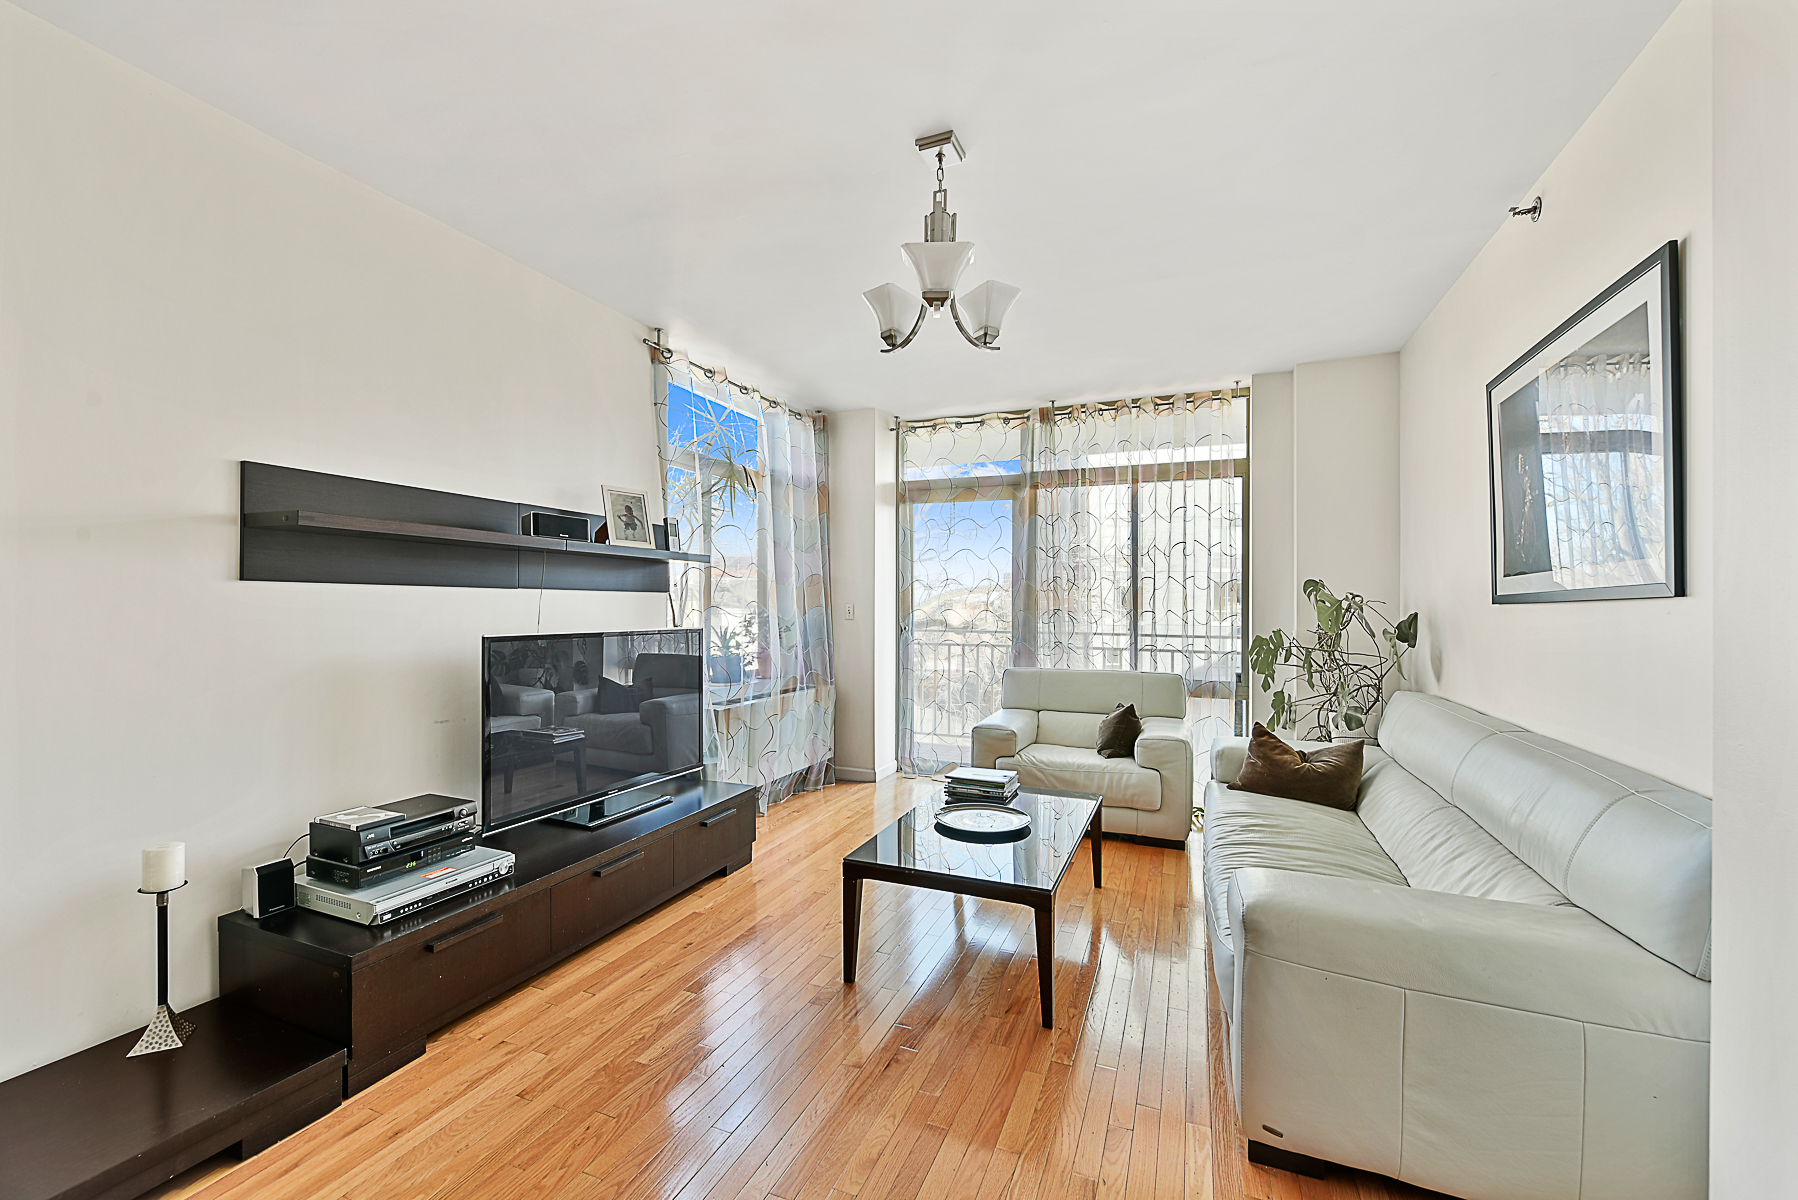 Appartement en copropriété pour l Vente à Sun-filled 3 BR Condo with Terrace 3625 Oxford Avenue 4A Riverdale, New York, 10463 États-Unis